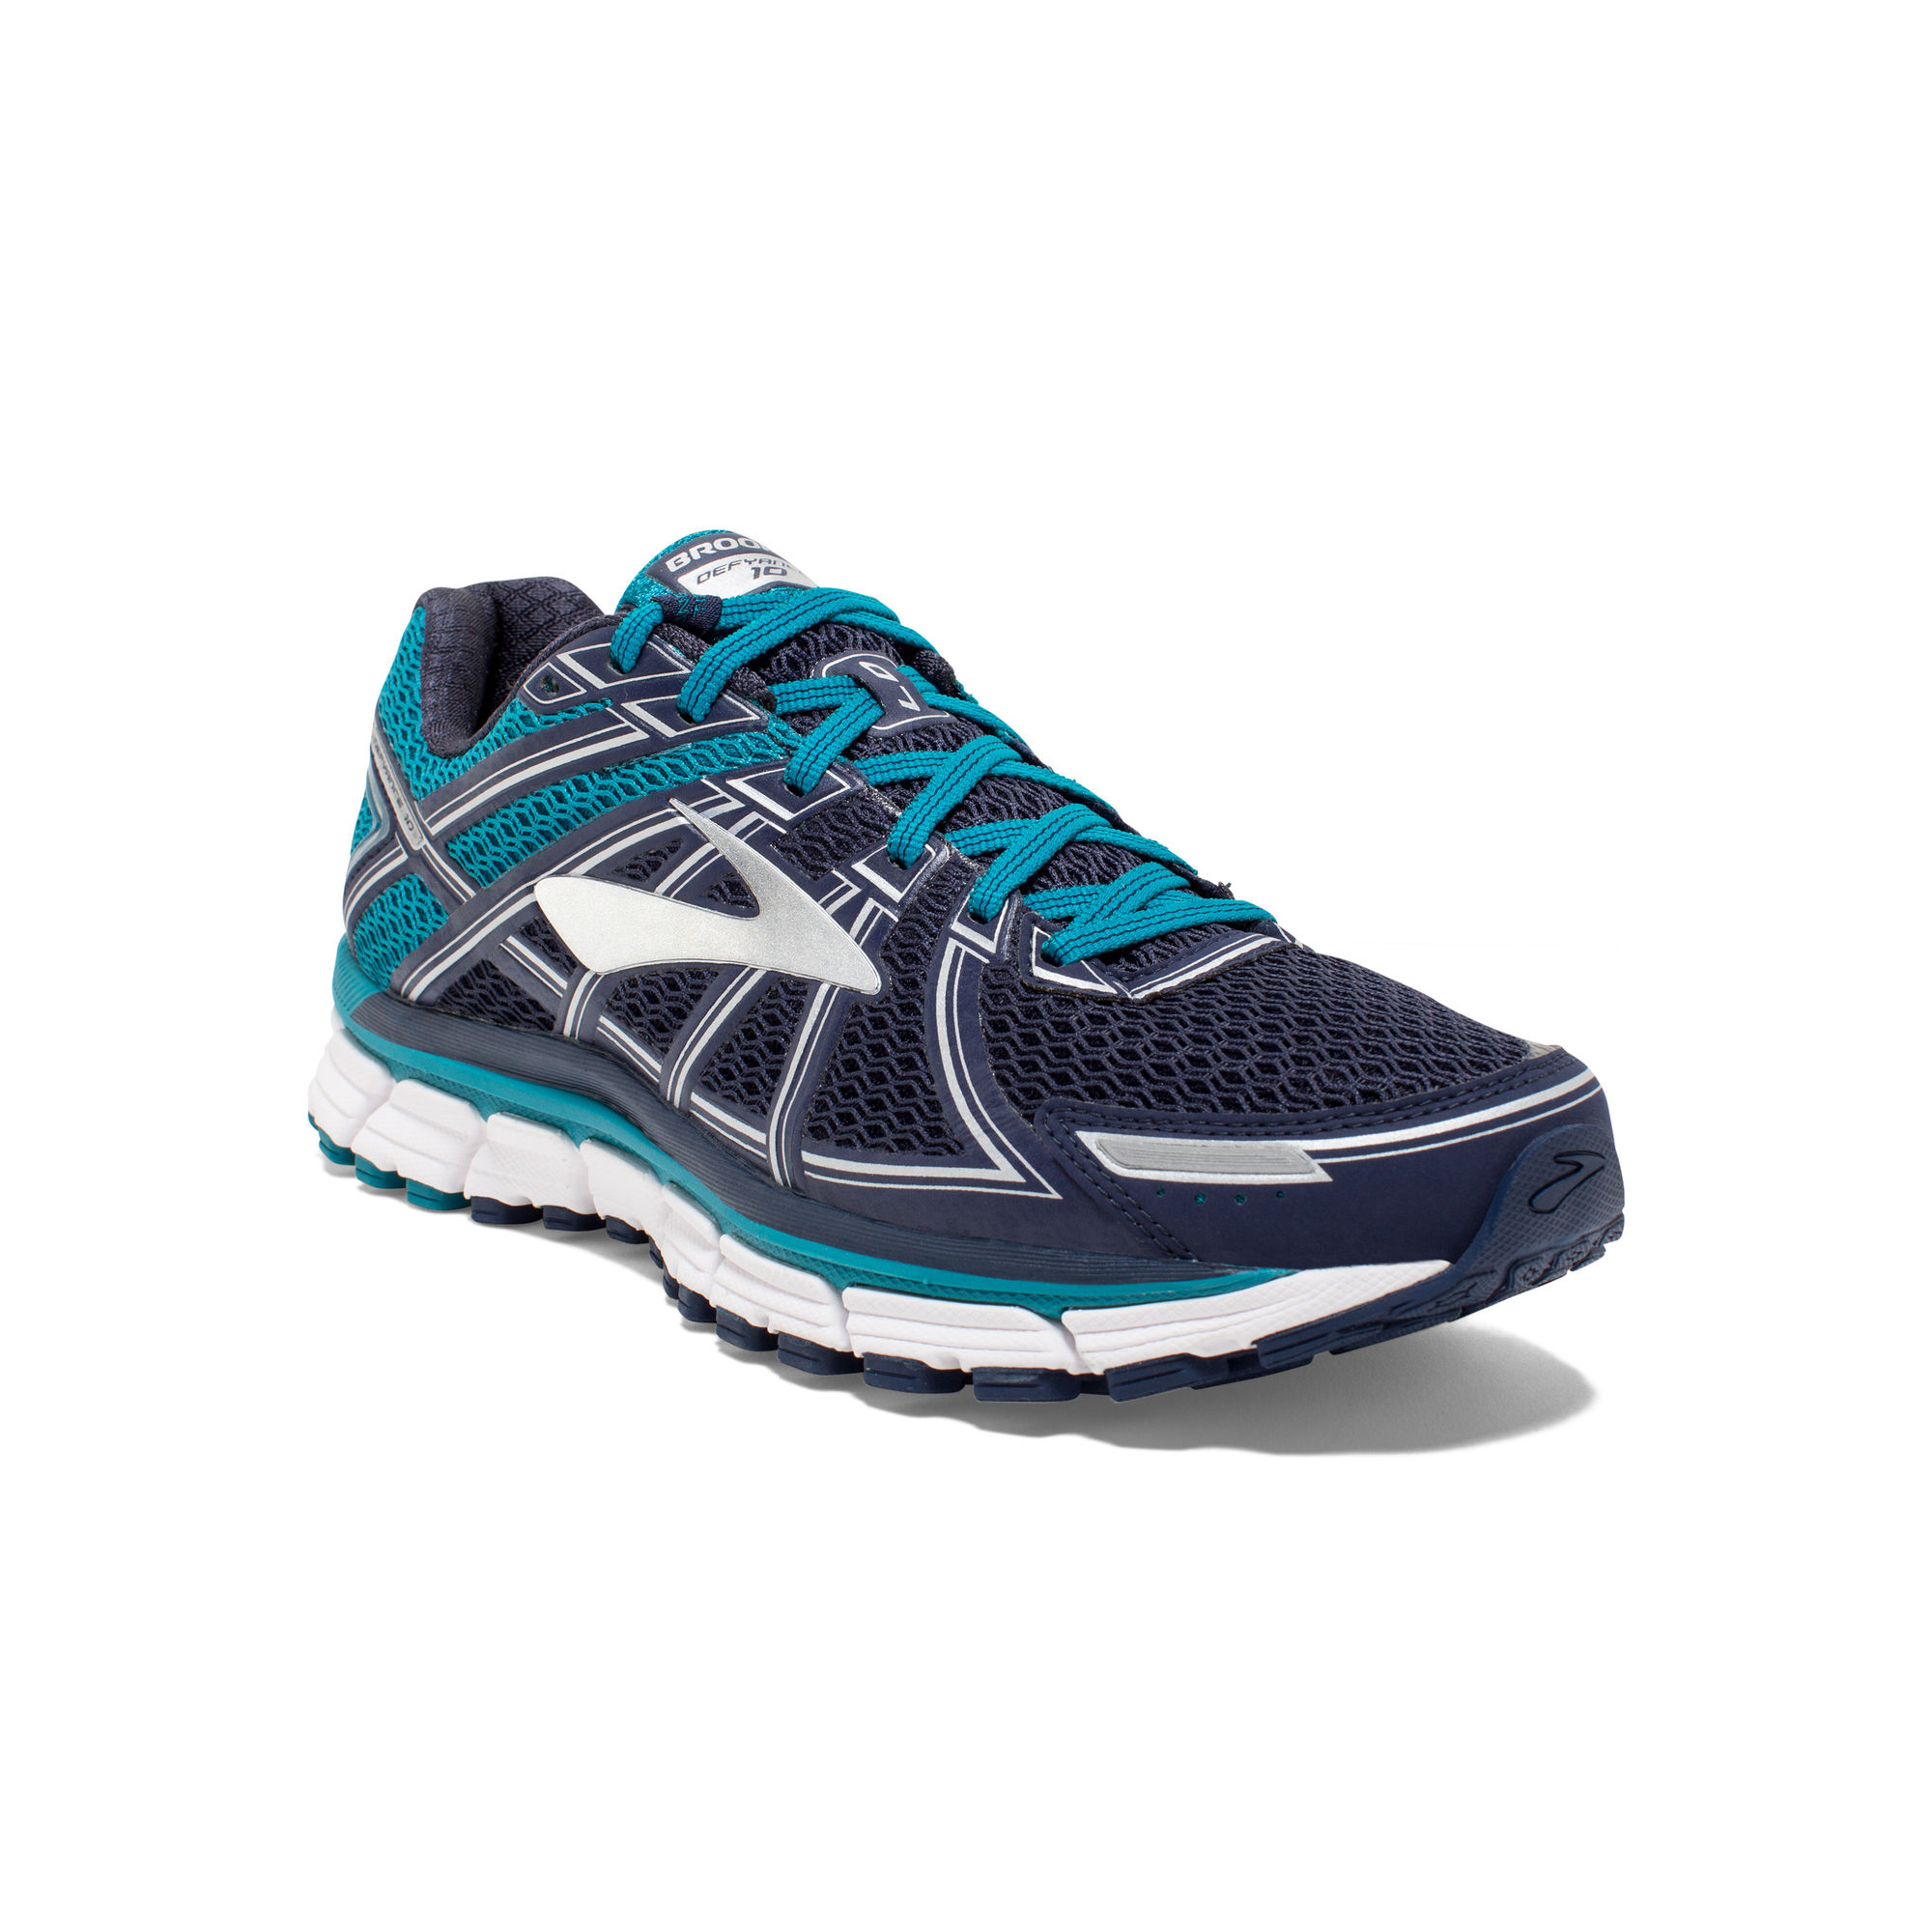 Brooks Defyance 10 B in Blau